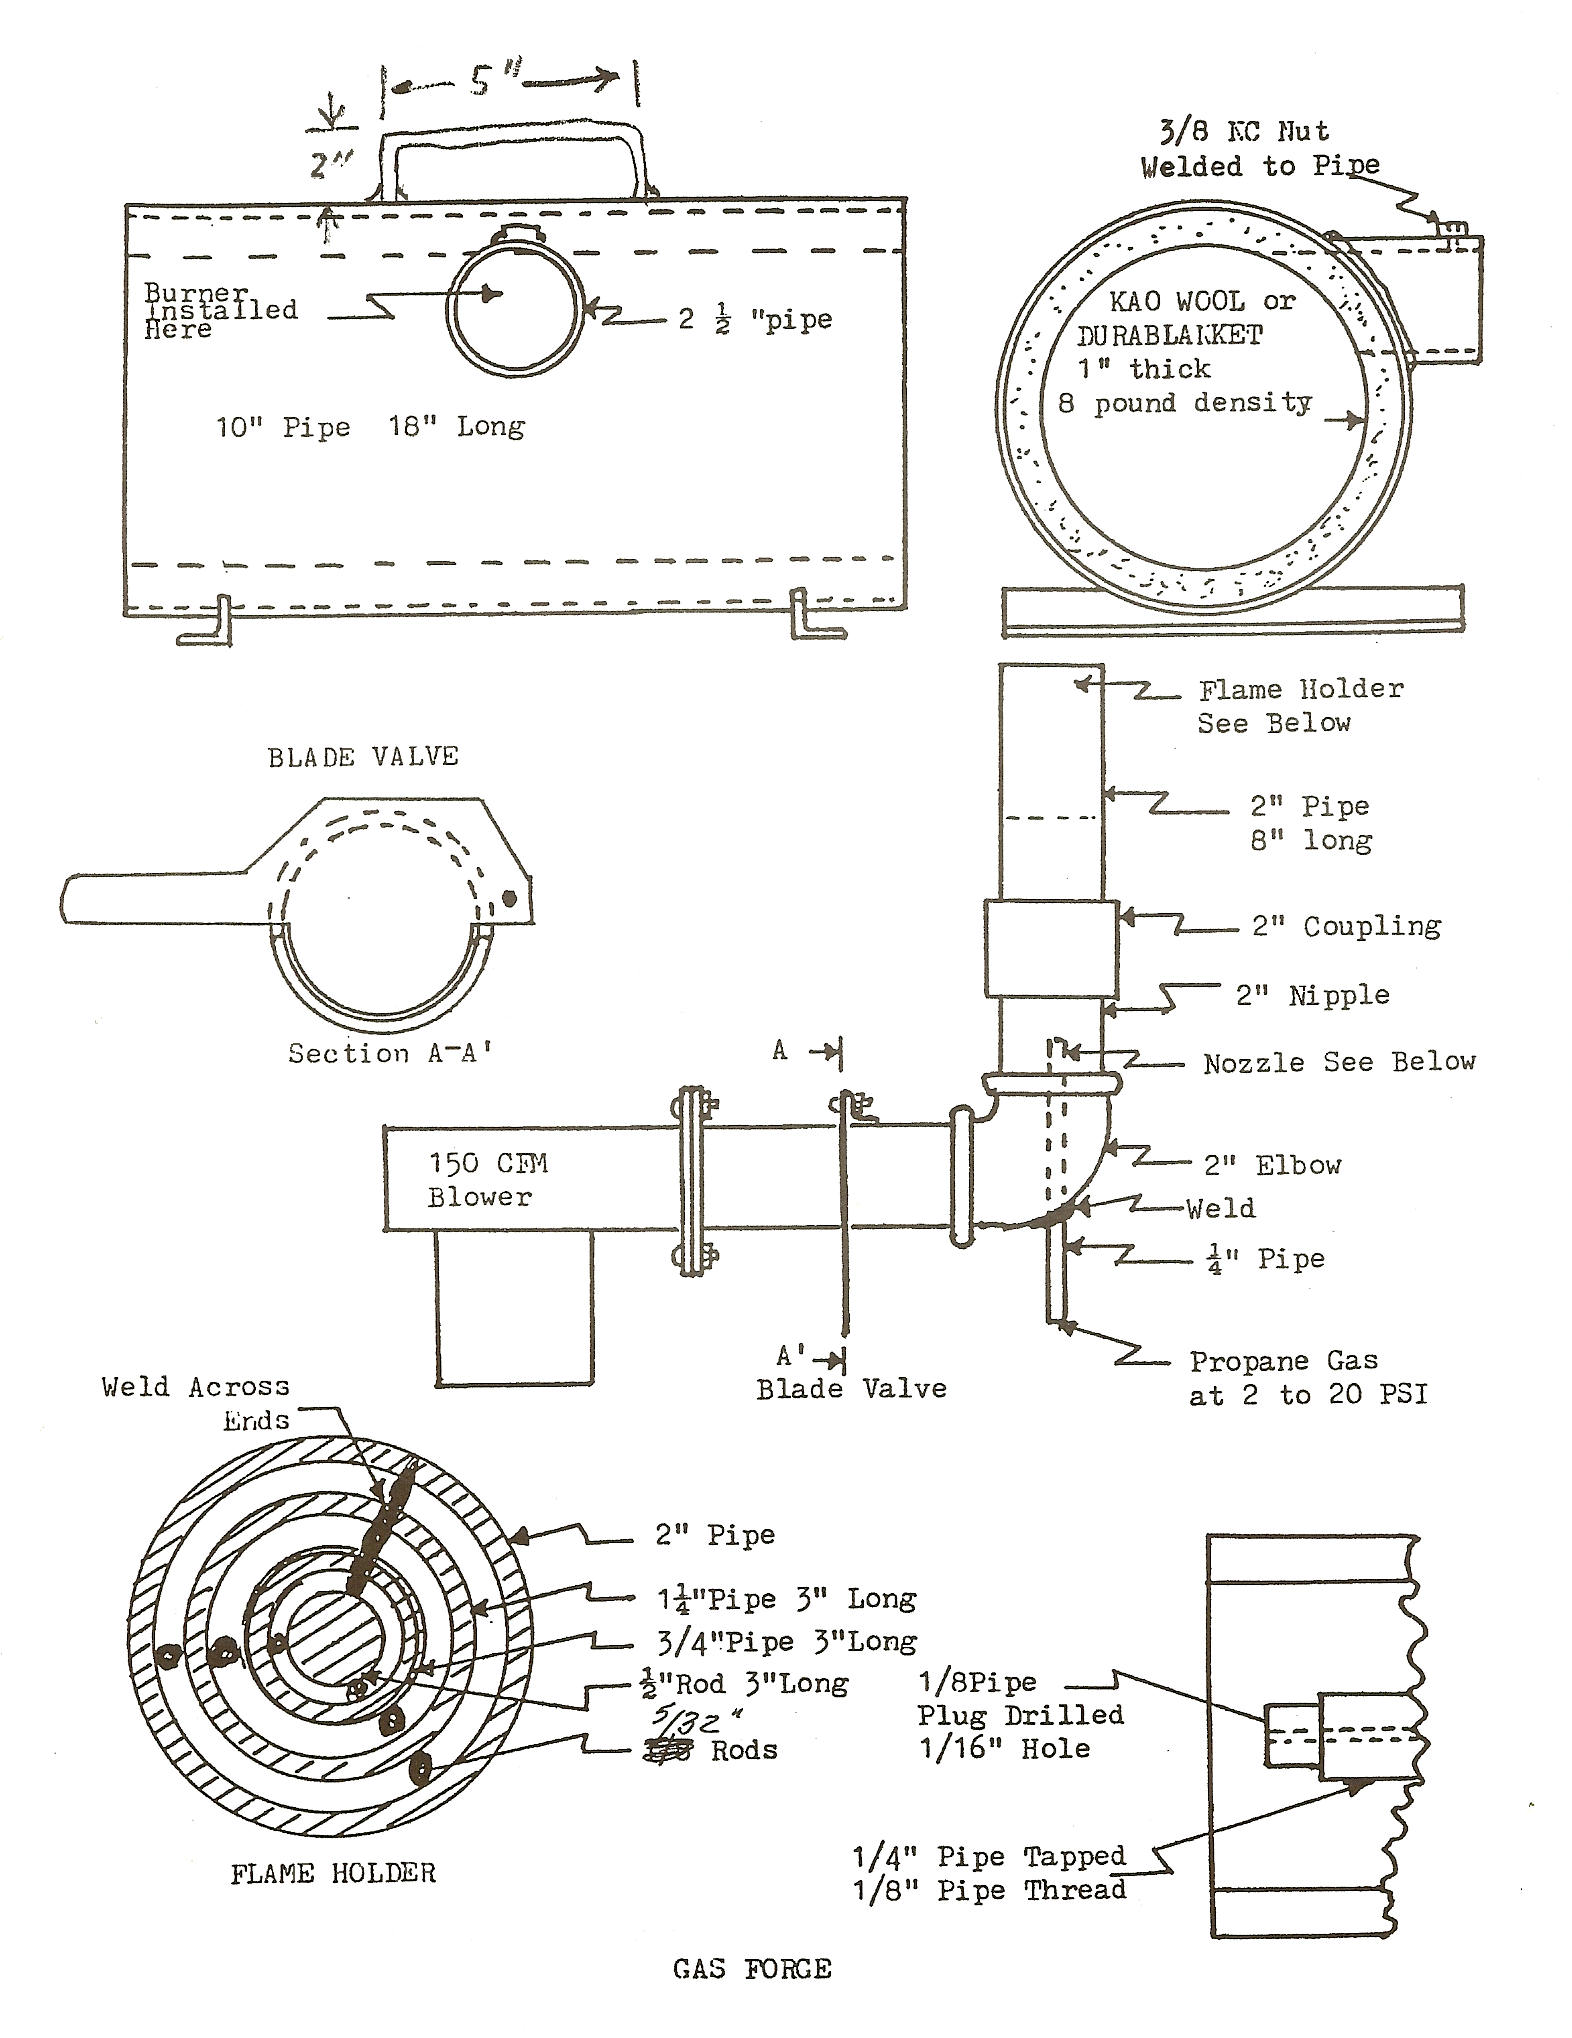 gas forge plans for the original page onethe drawings - Homemade Propane Forge Design